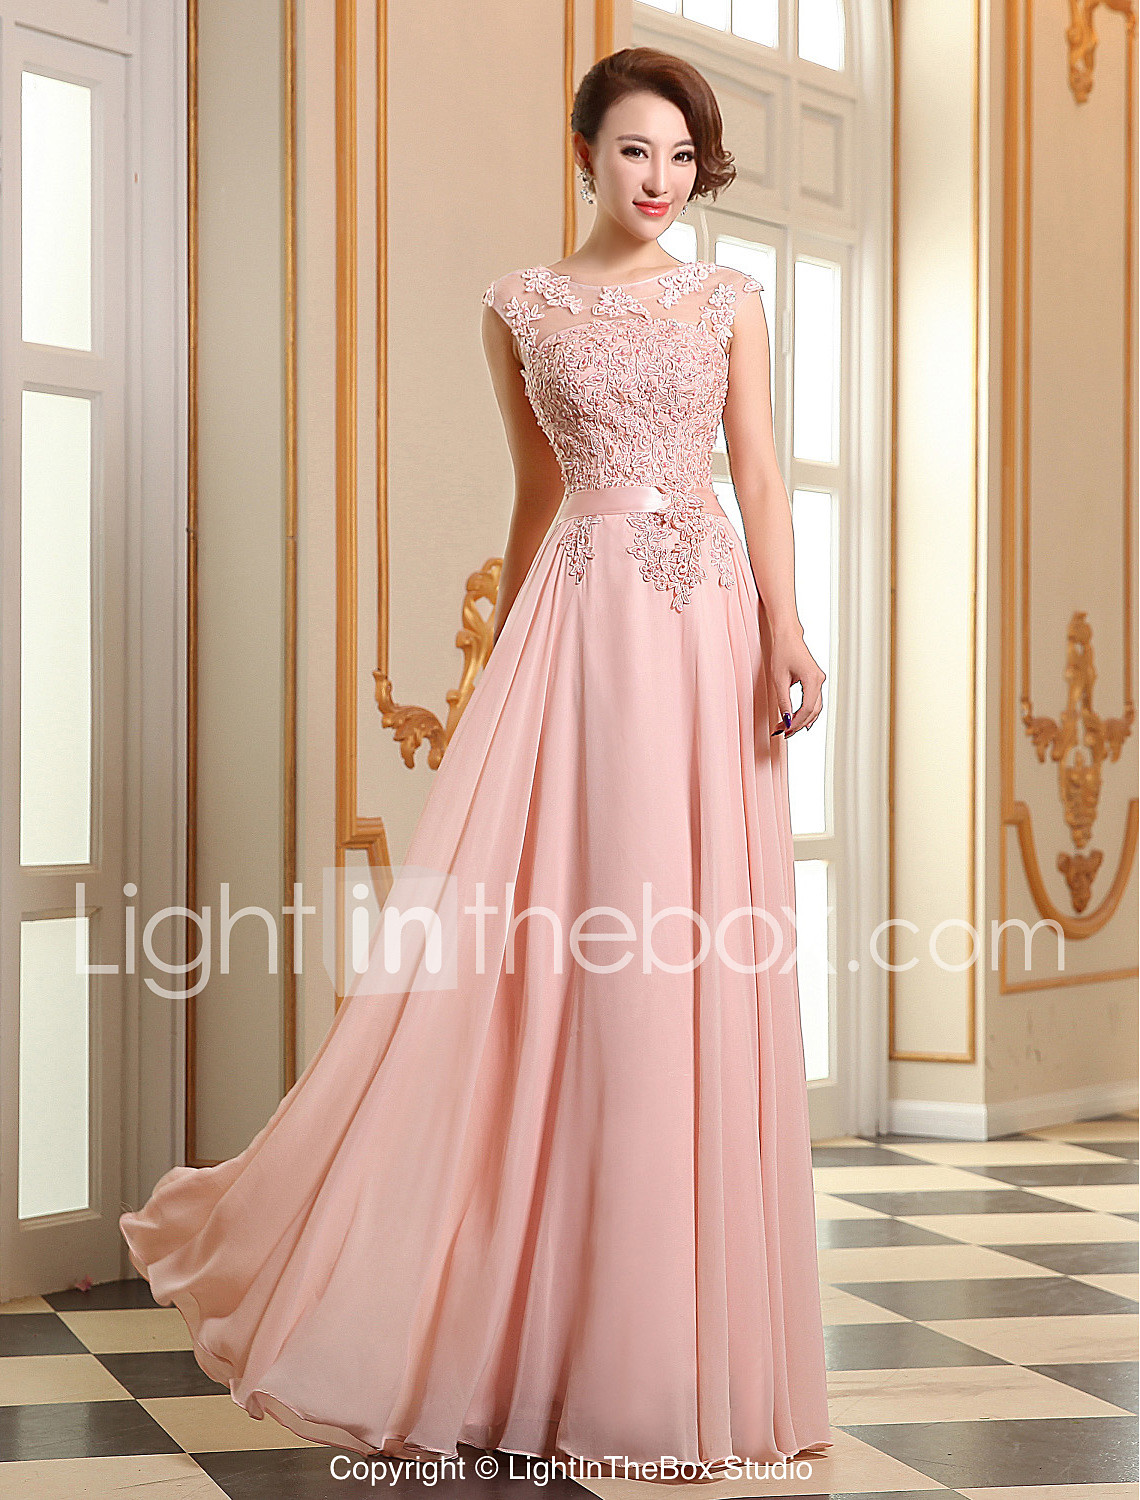 Pictures Of Evening Dresses